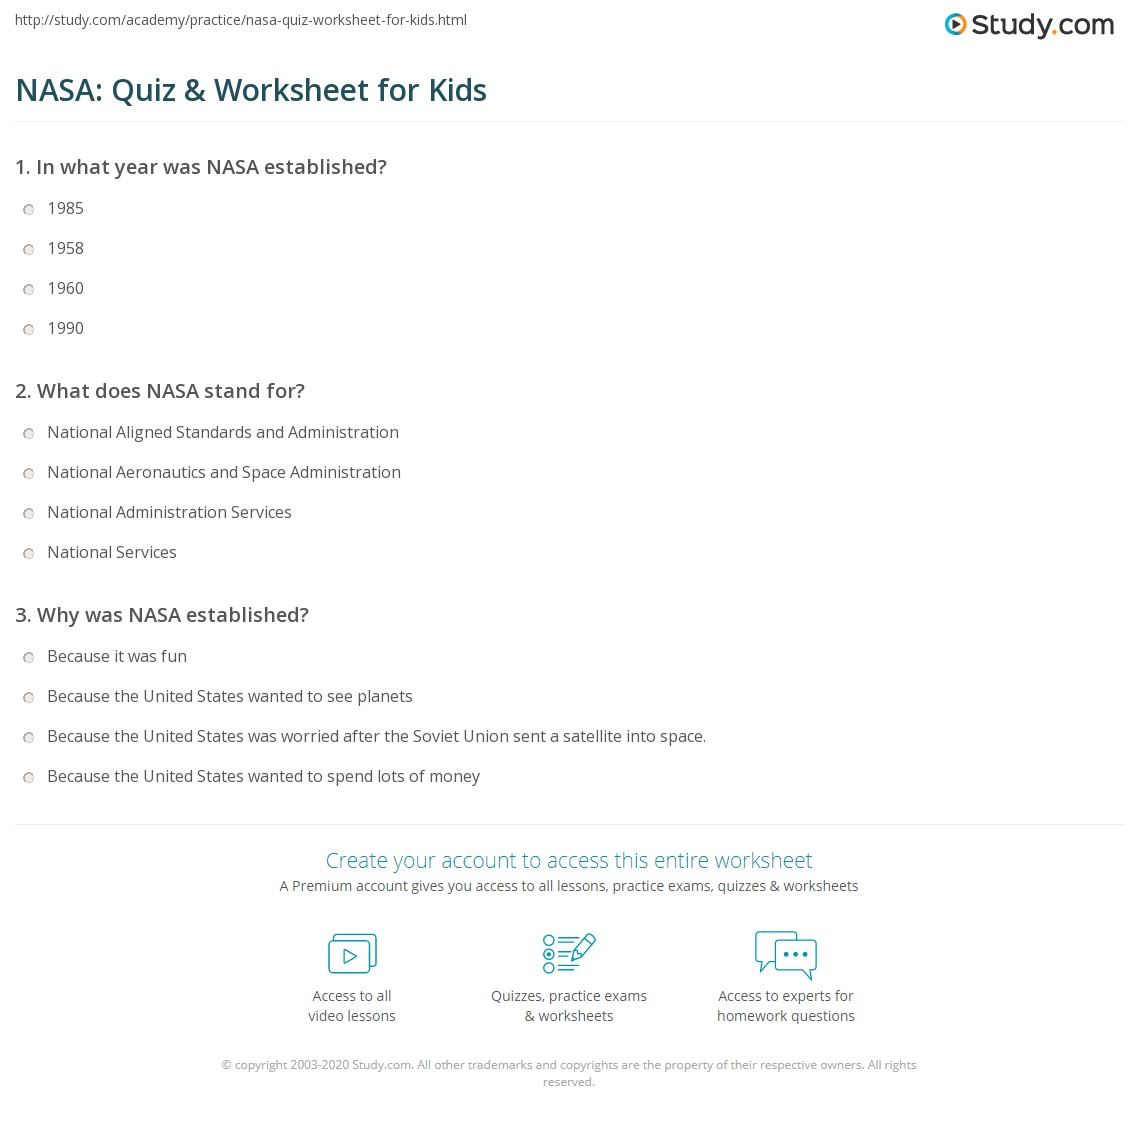 picture about 4th Grade Trivia Questions and Answers Printable titled NASA: Quiz Worksheet for Children